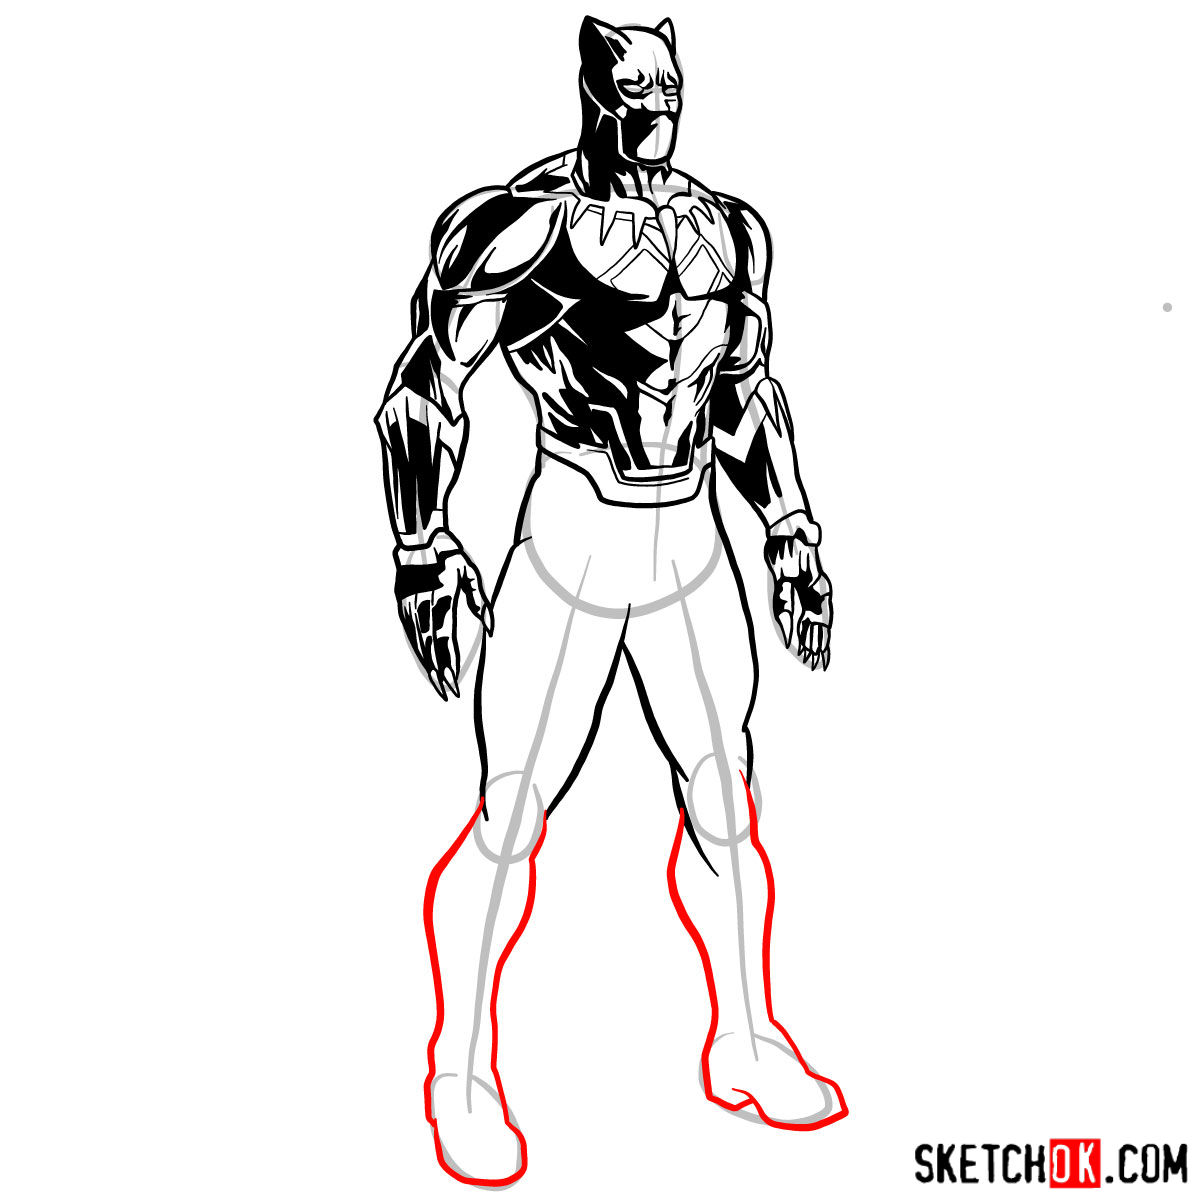 How to draw Black Panther from Marvel - step 14